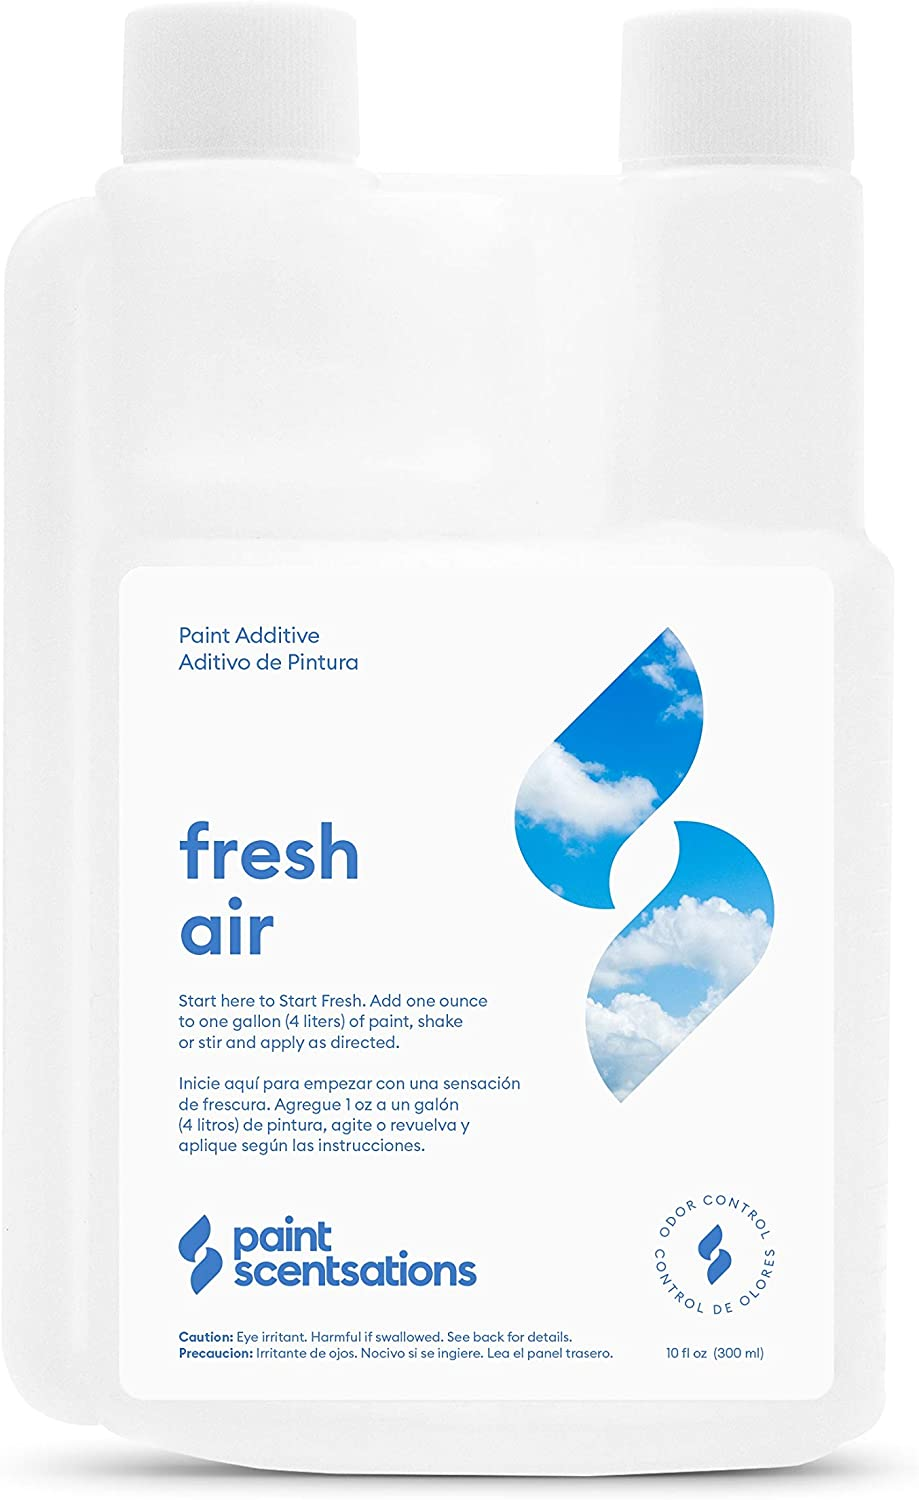 Paint Scentsations 103-10 Scented Paint Additive Fresh Air Fragrance, 10-Ounce